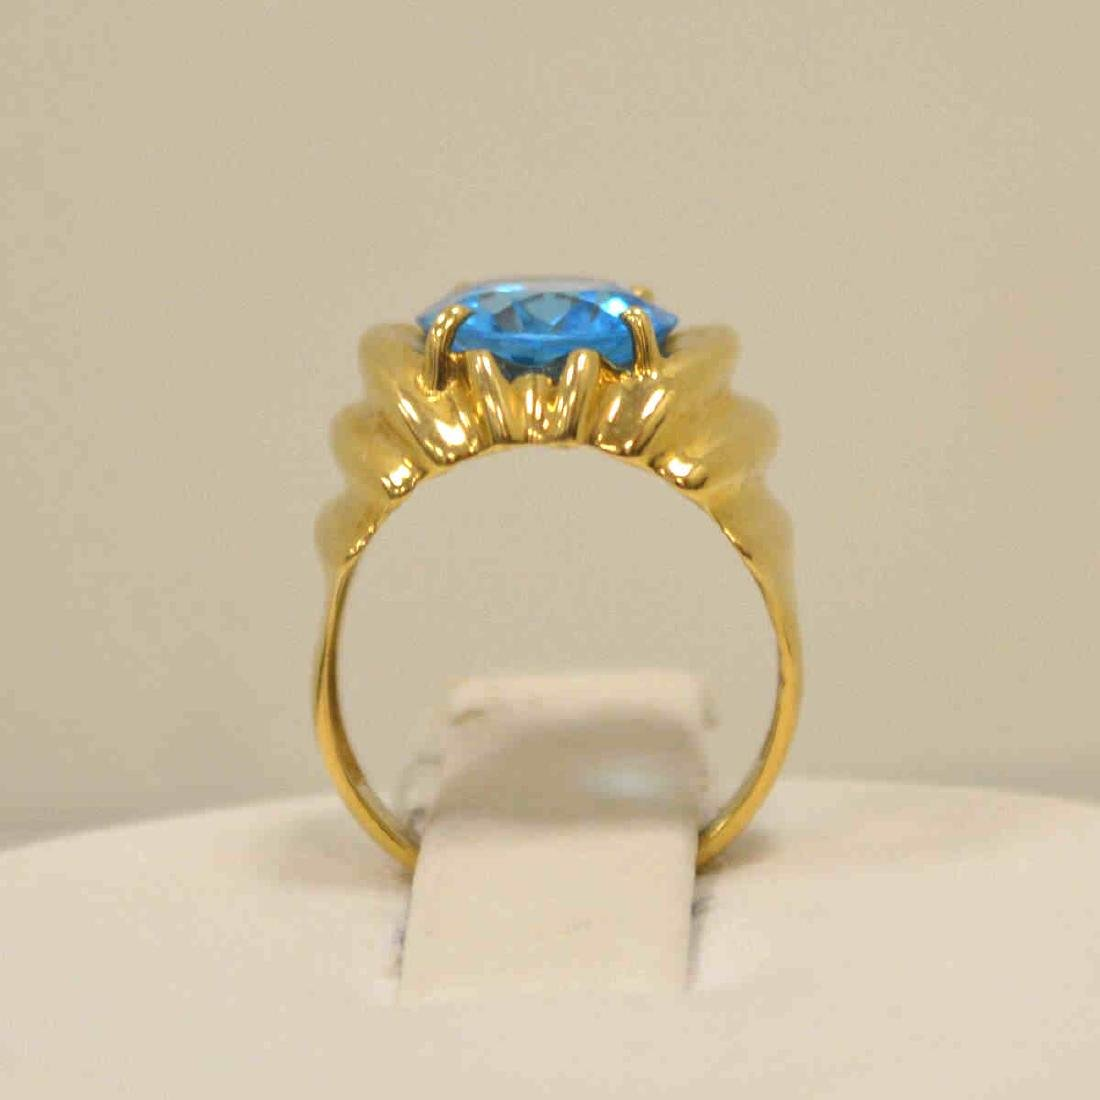 14kt yellow gold blue topaz ring - 3